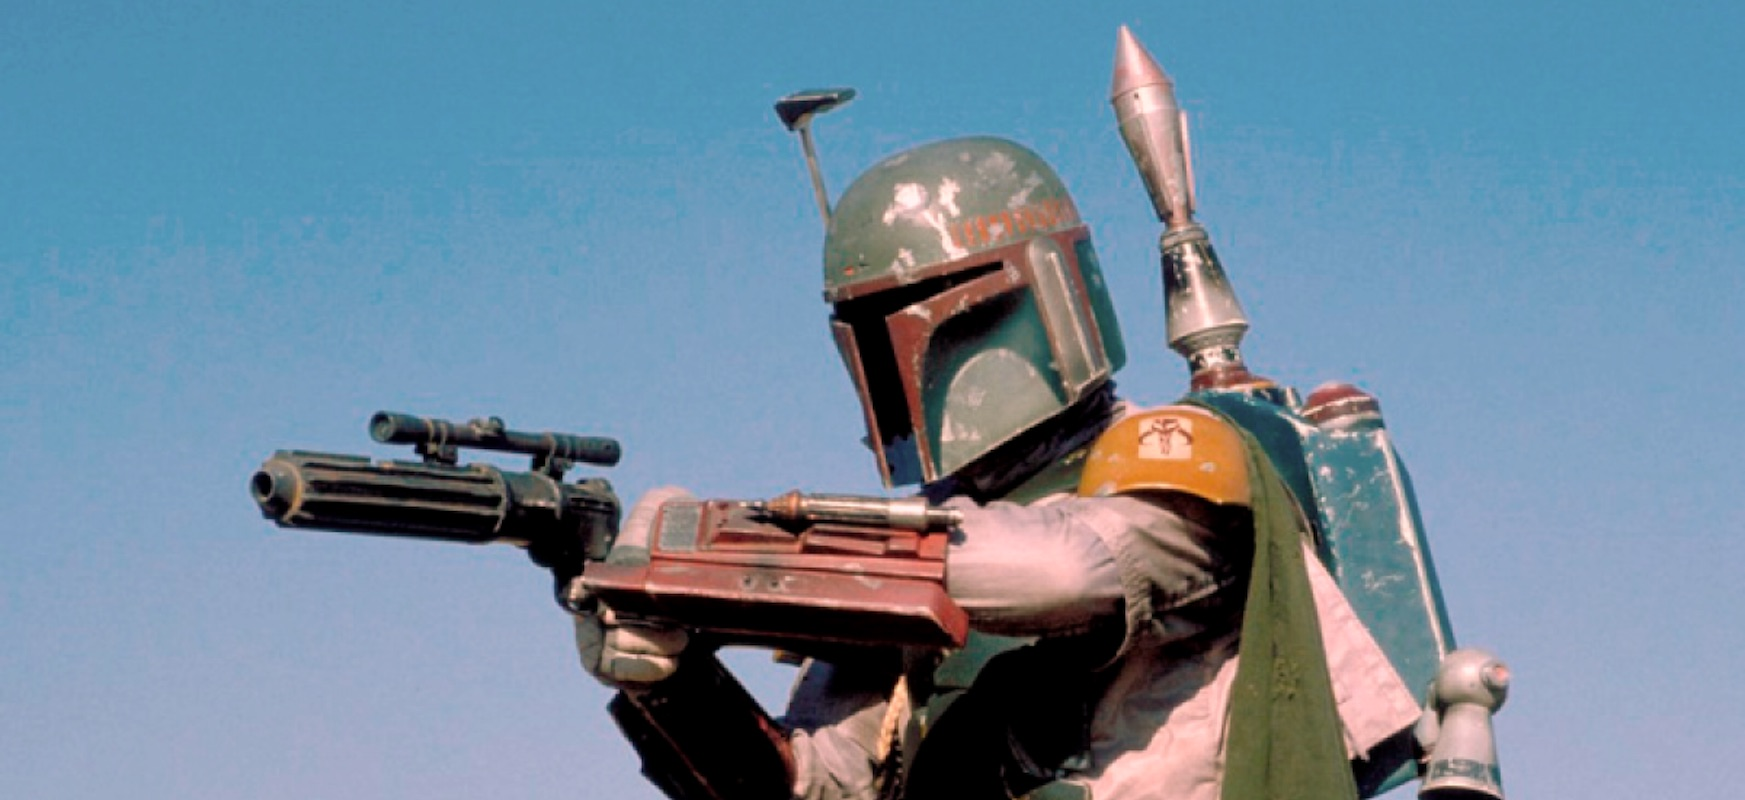 the-mandalorian-serial-disney boba fett cameo 2 sezon